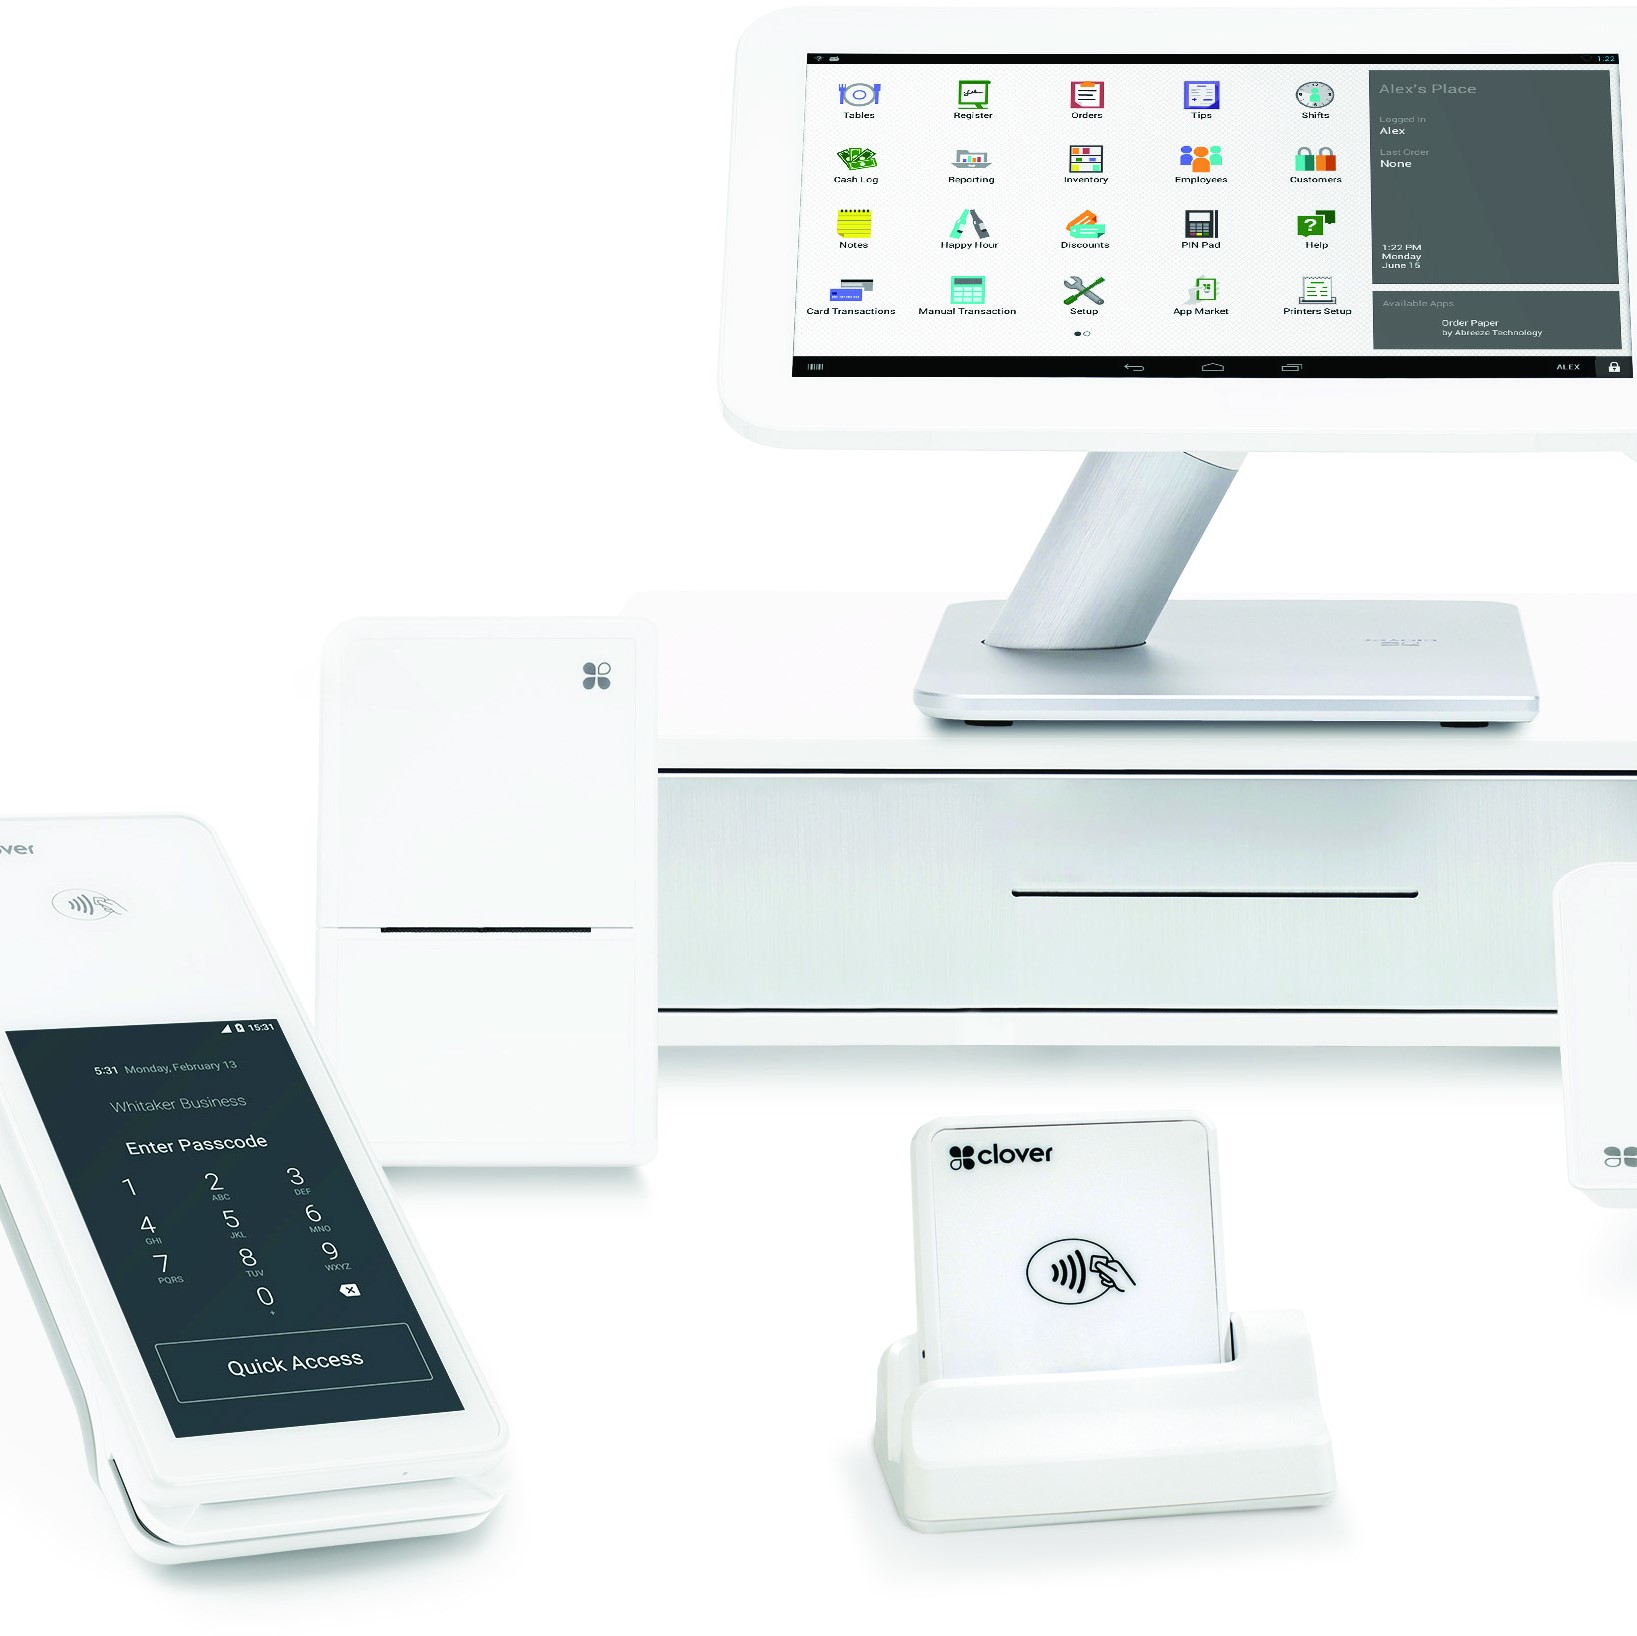 clover-pos-system-square-photo